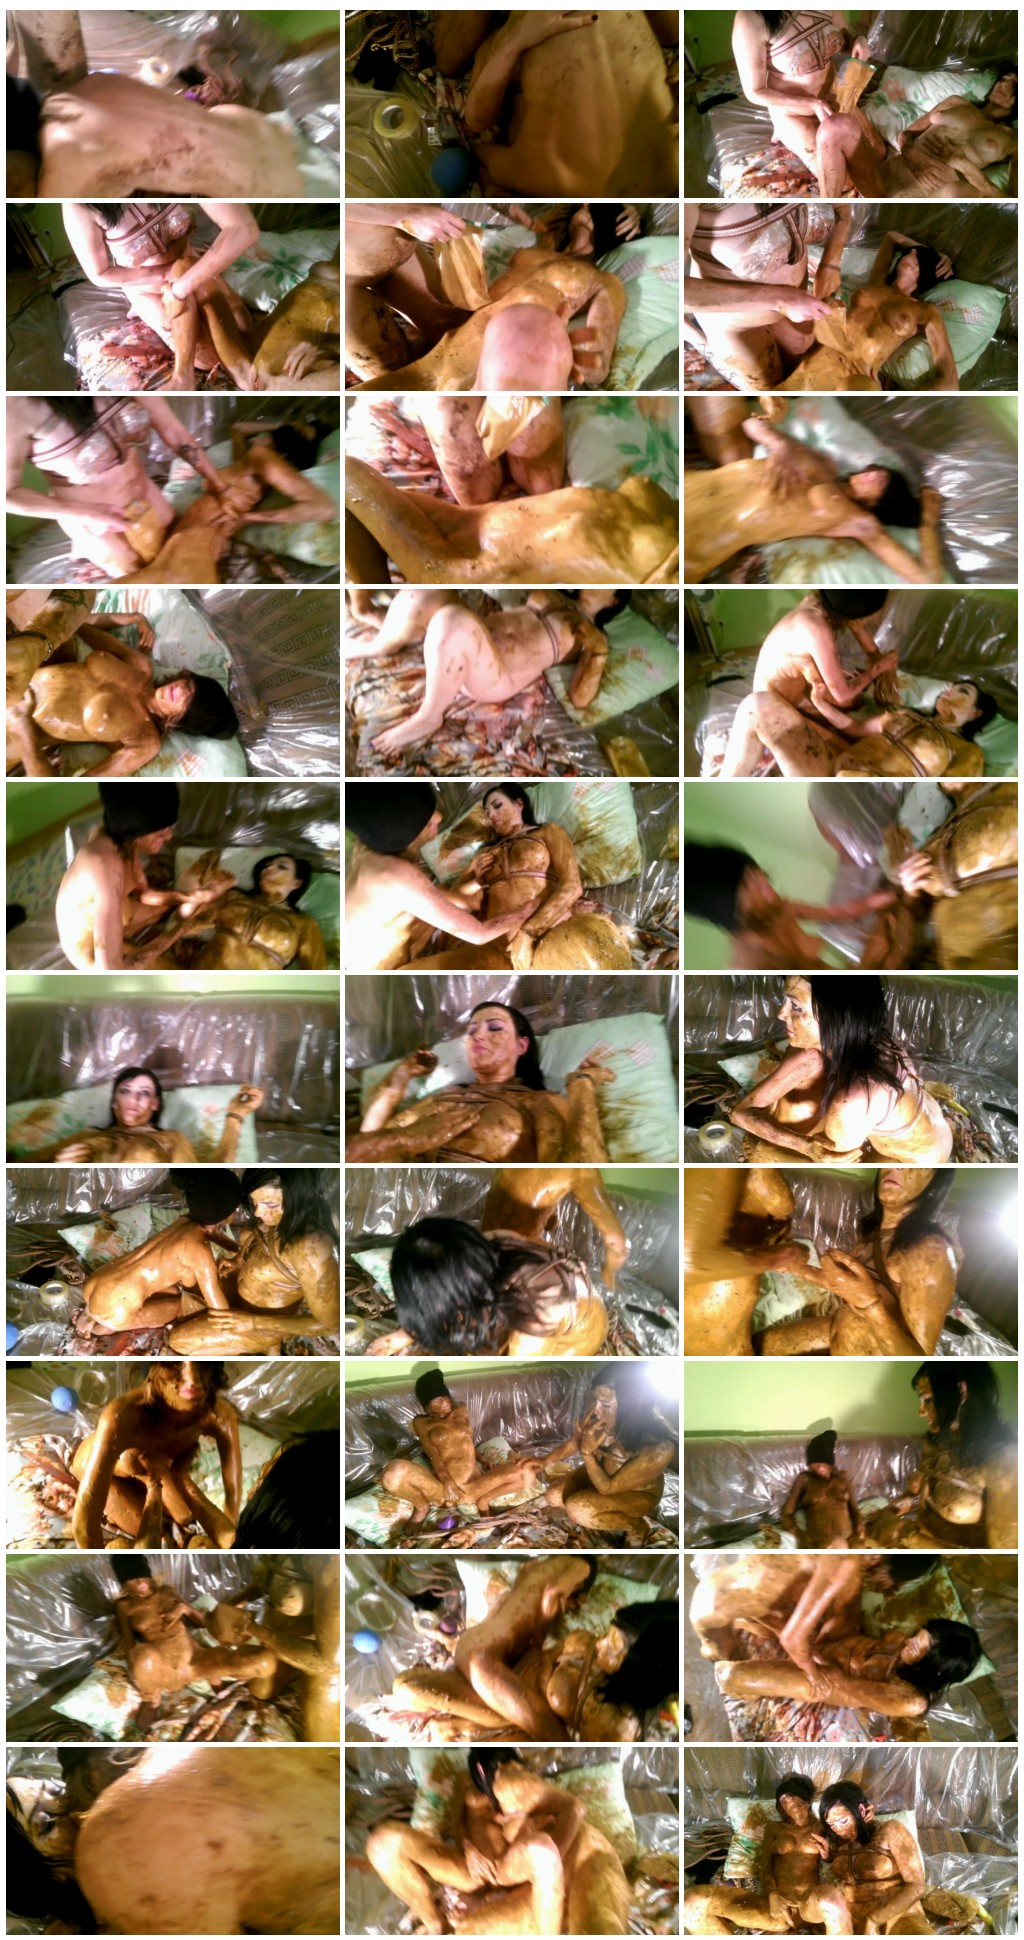 AstraCelestial Extreme Scat Orgy Part 4 of 6  thumb - AstraCelestial - Extreme Scat Orgy Part 4 of 6